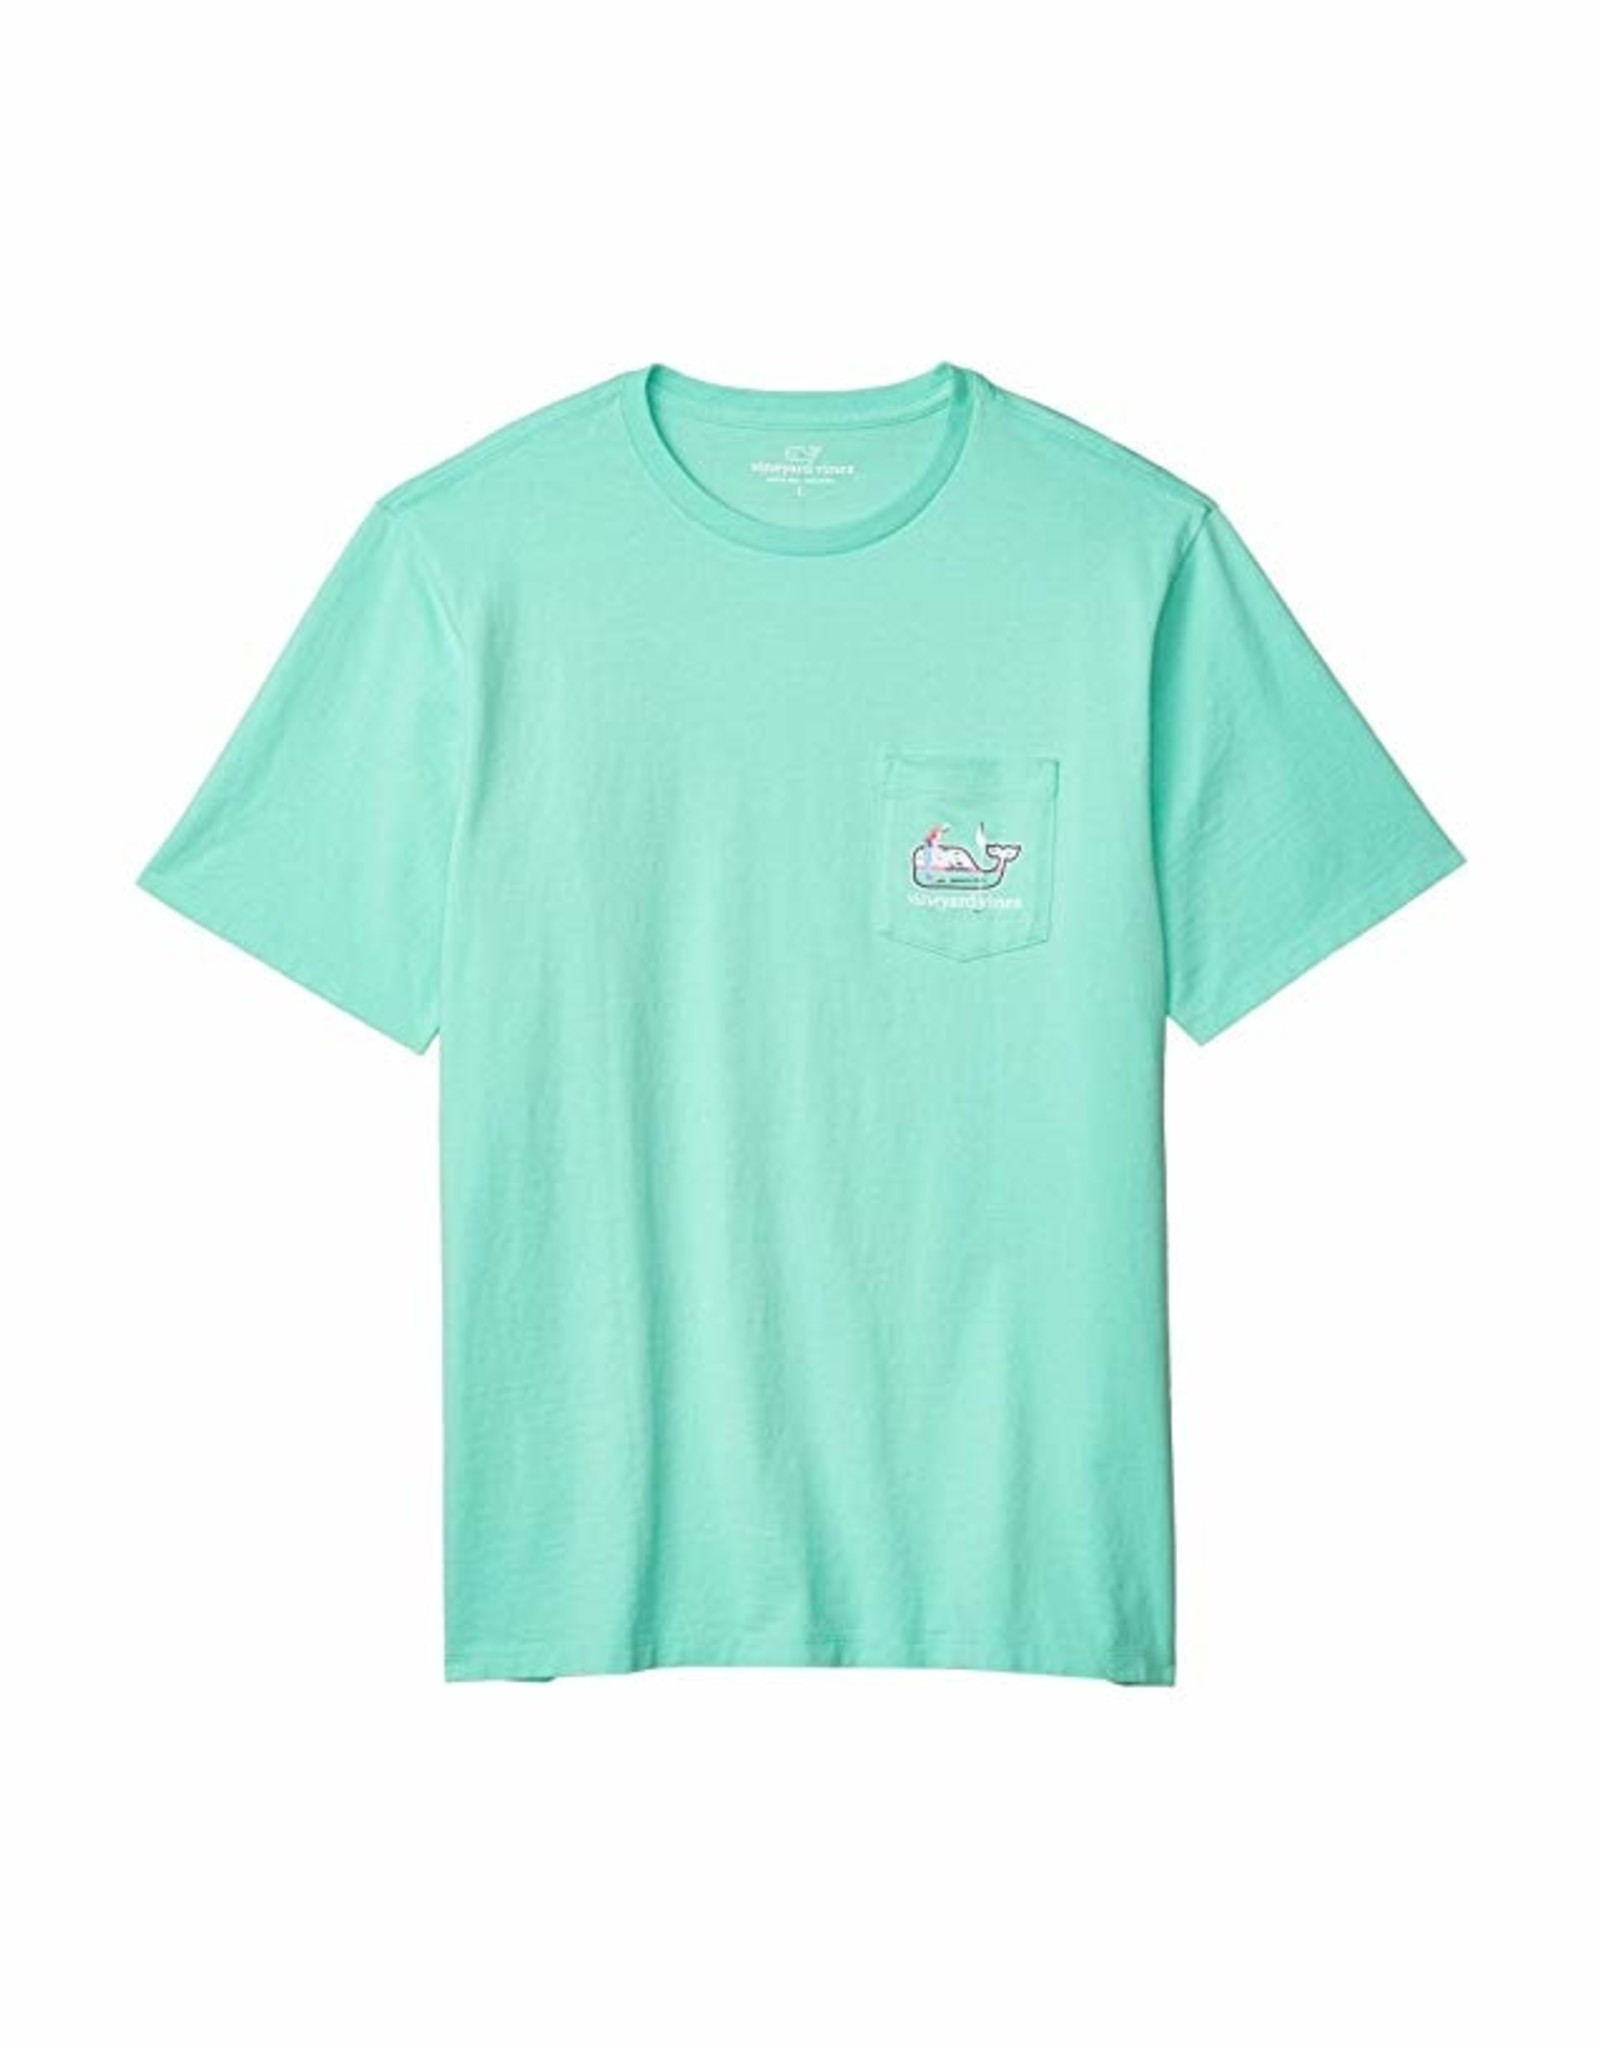 Vineyard Vines Beach Golf Whale